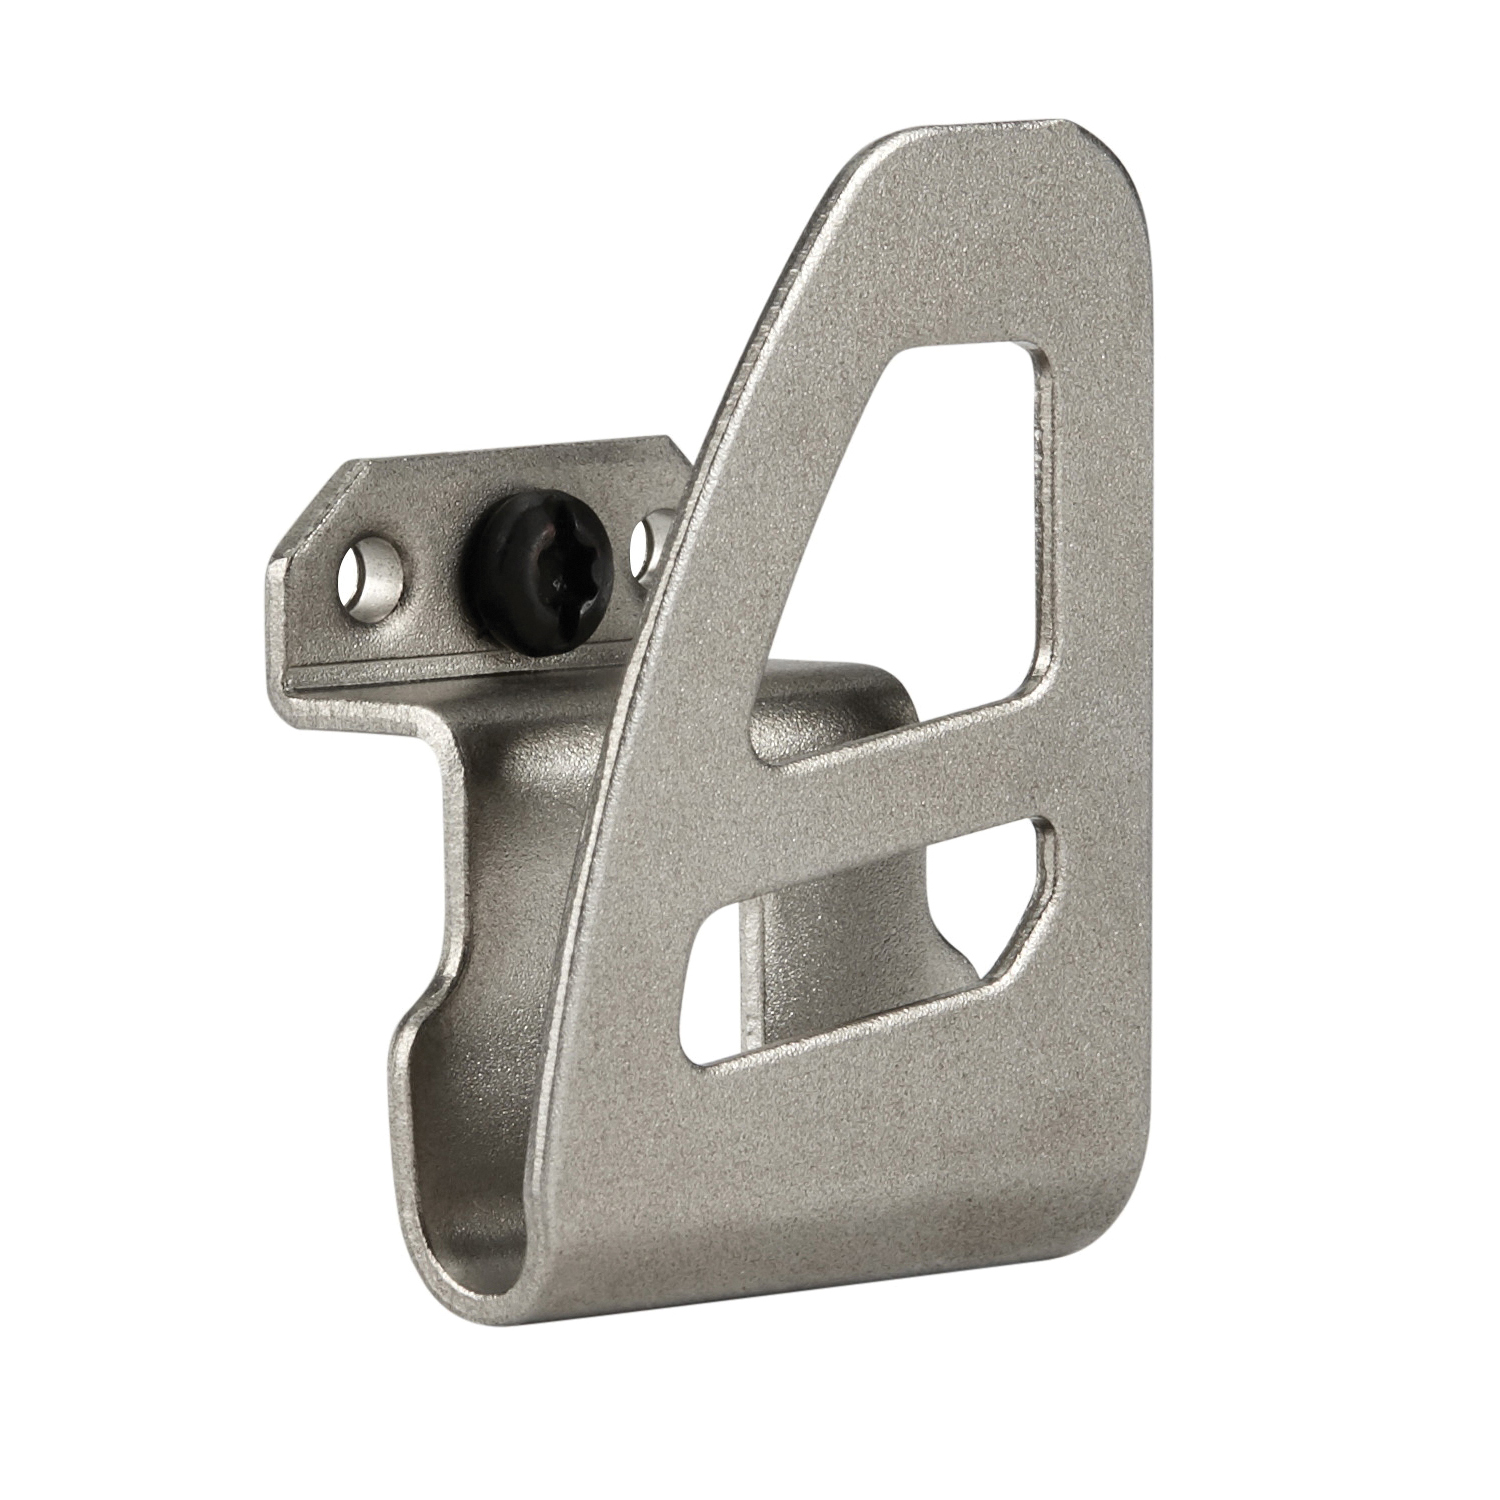 Milwaukee® 48-67-0015 Belt Clip, For Use With M18™ Cordless Drills, Impacts and Impact Wrenches